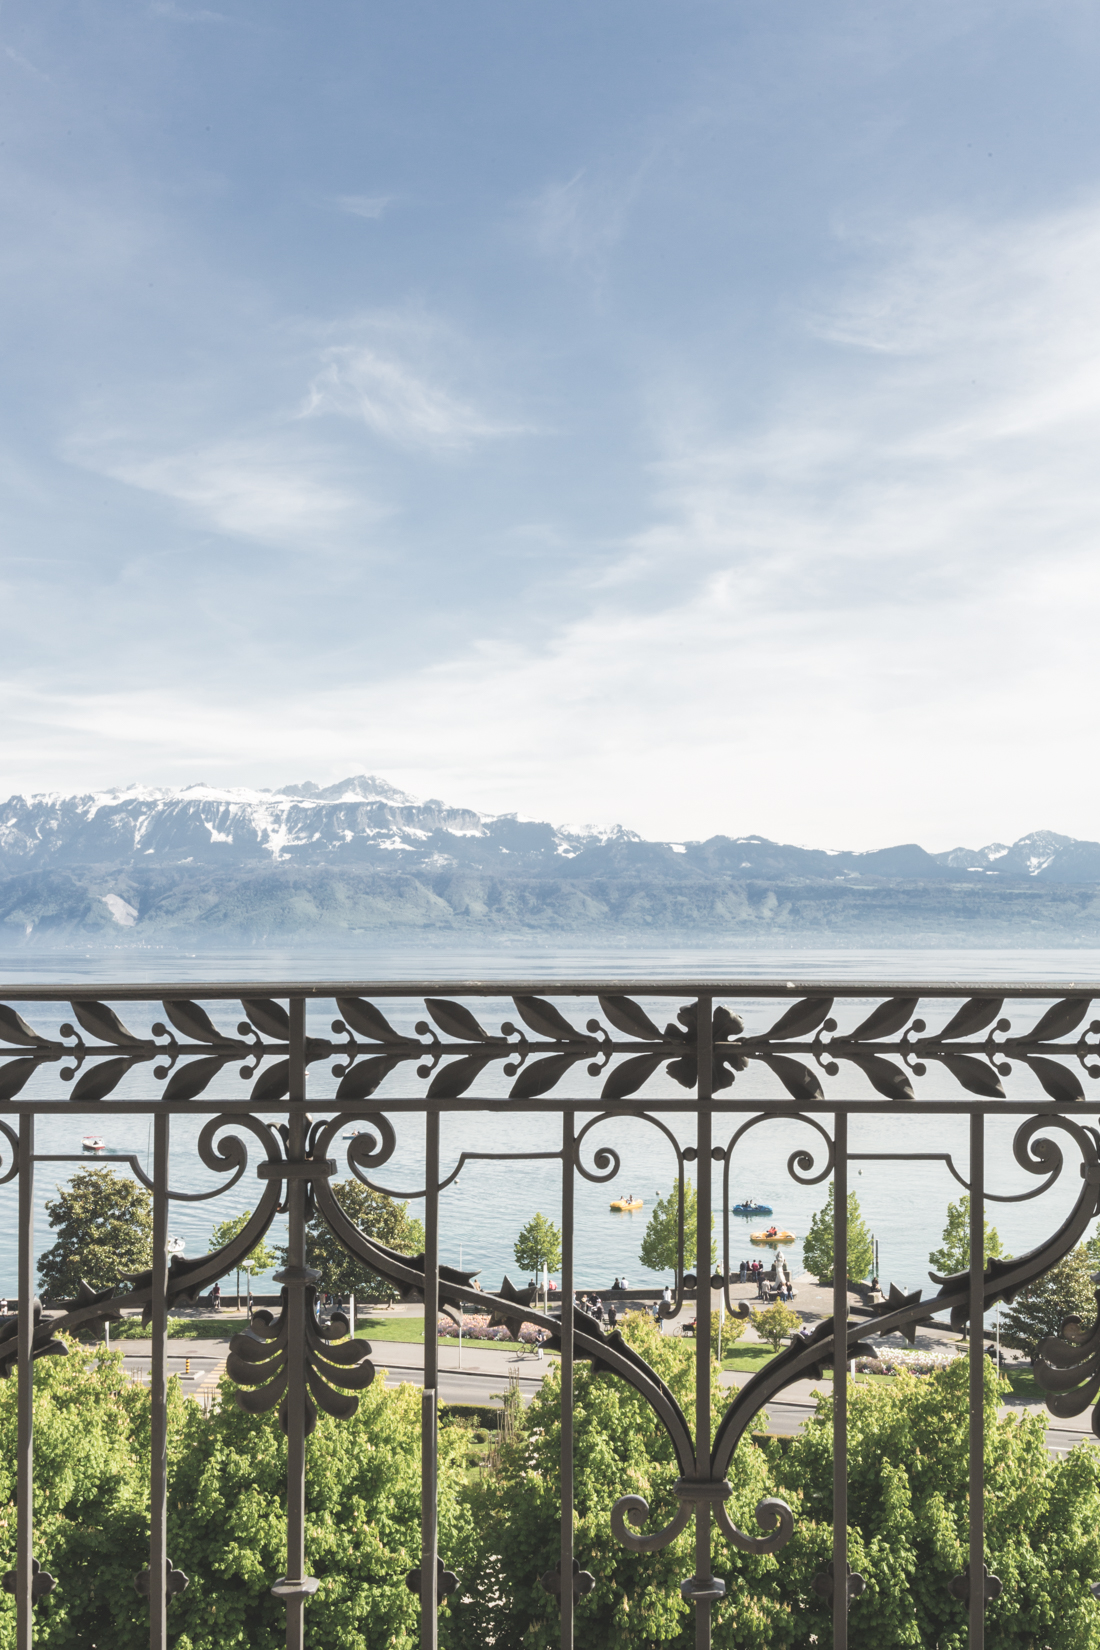 1100_lausanne_beau_rivage_palace_brp_pictures_photos_avis_review_copyright_PaulinePRIVEZ_paulinefashionblog_com-32